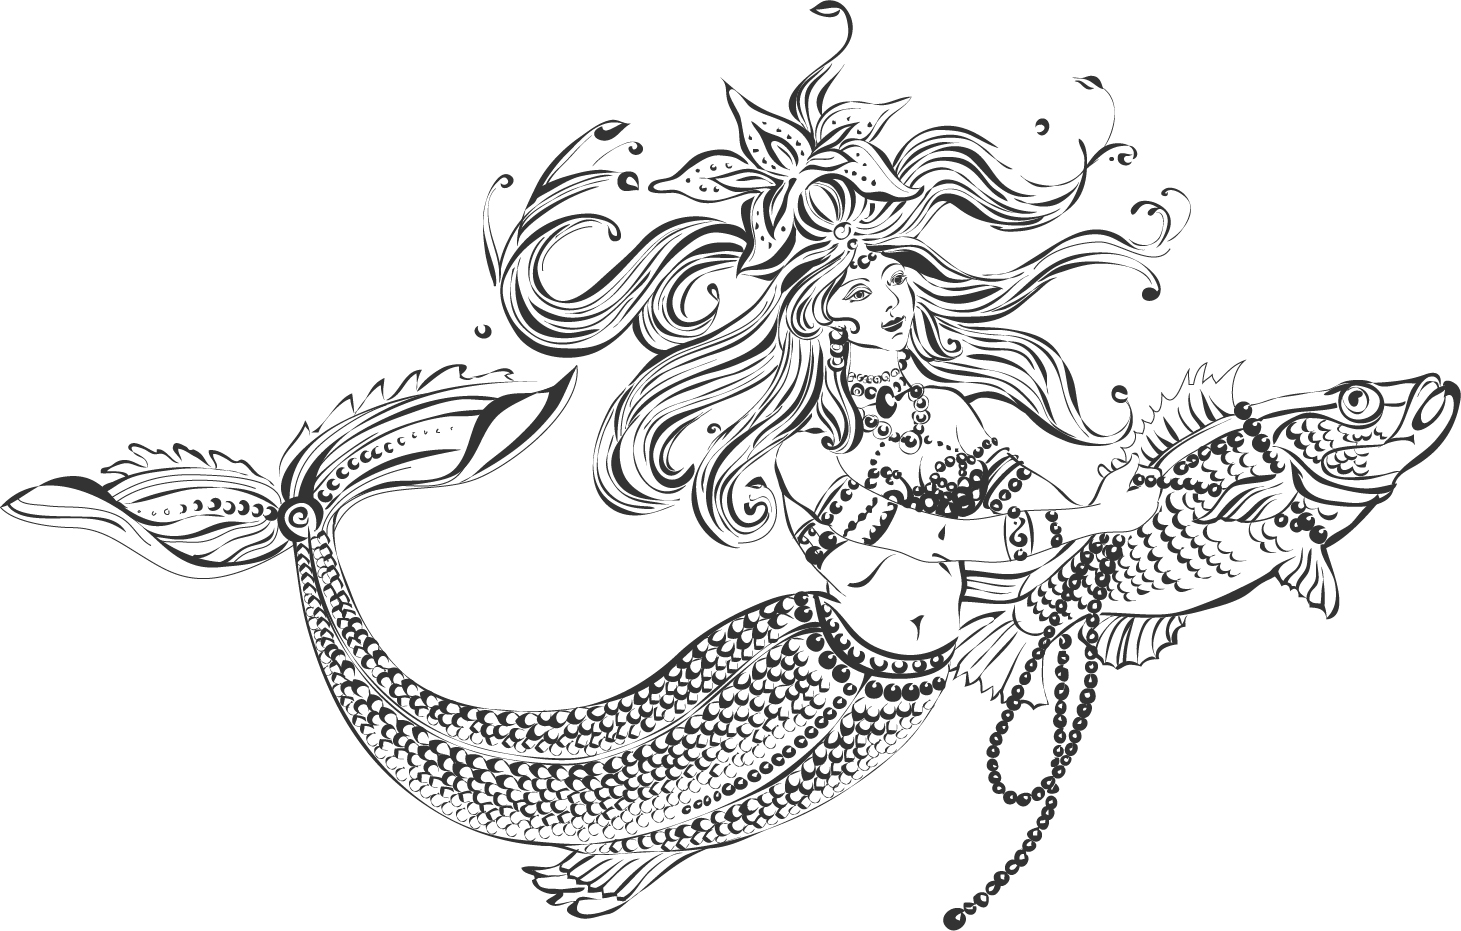 Swooner Mermaid 1.jpg